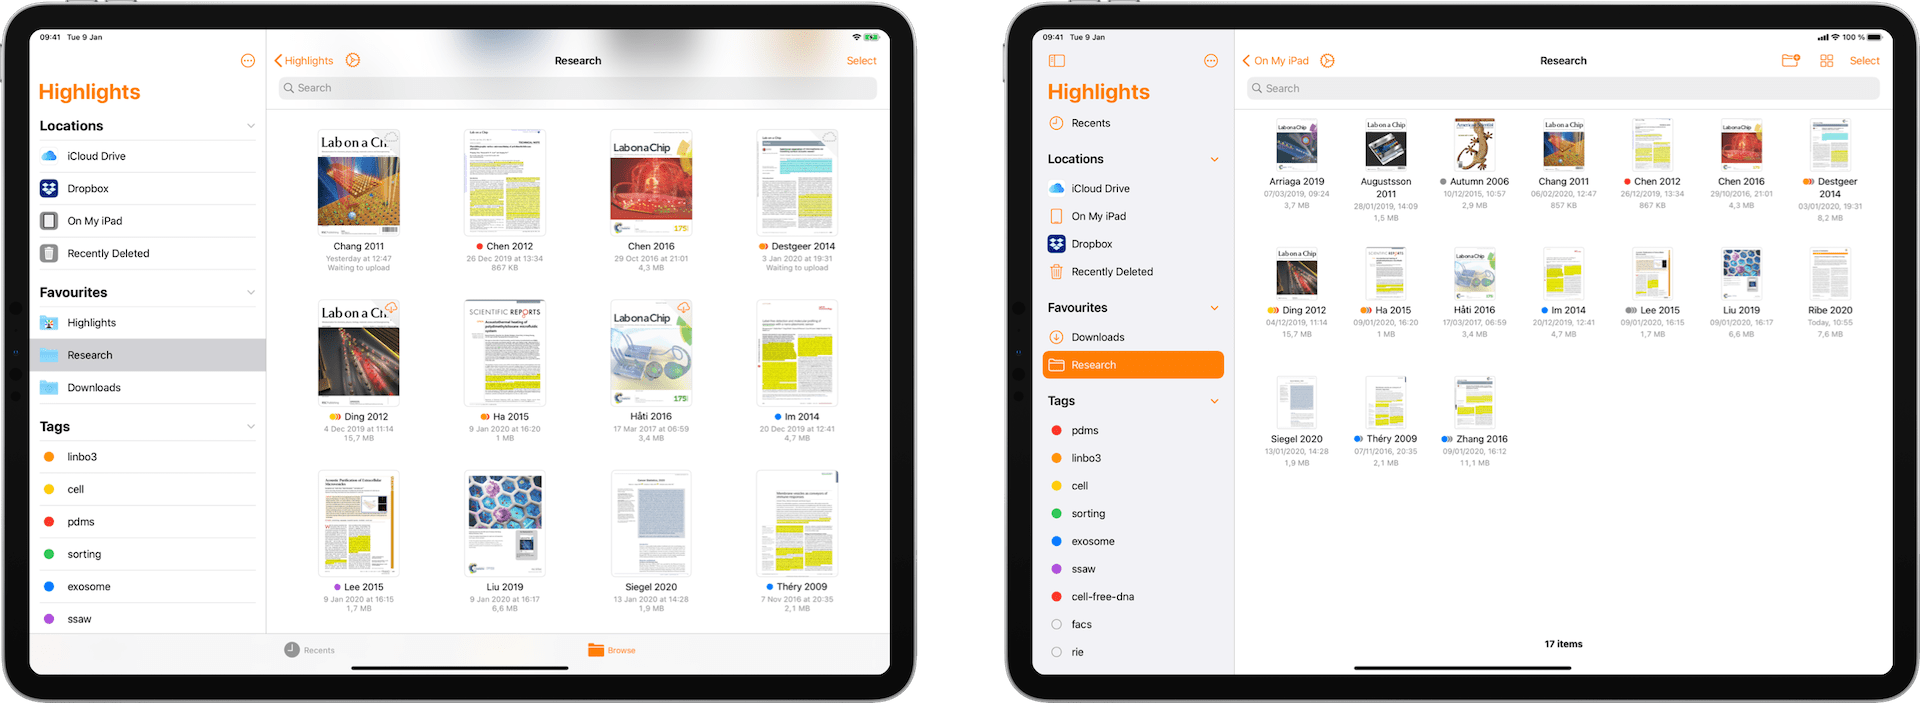 Comparison of the document browser in iPadOS 13 on the left and iPadOS 14 on the right.